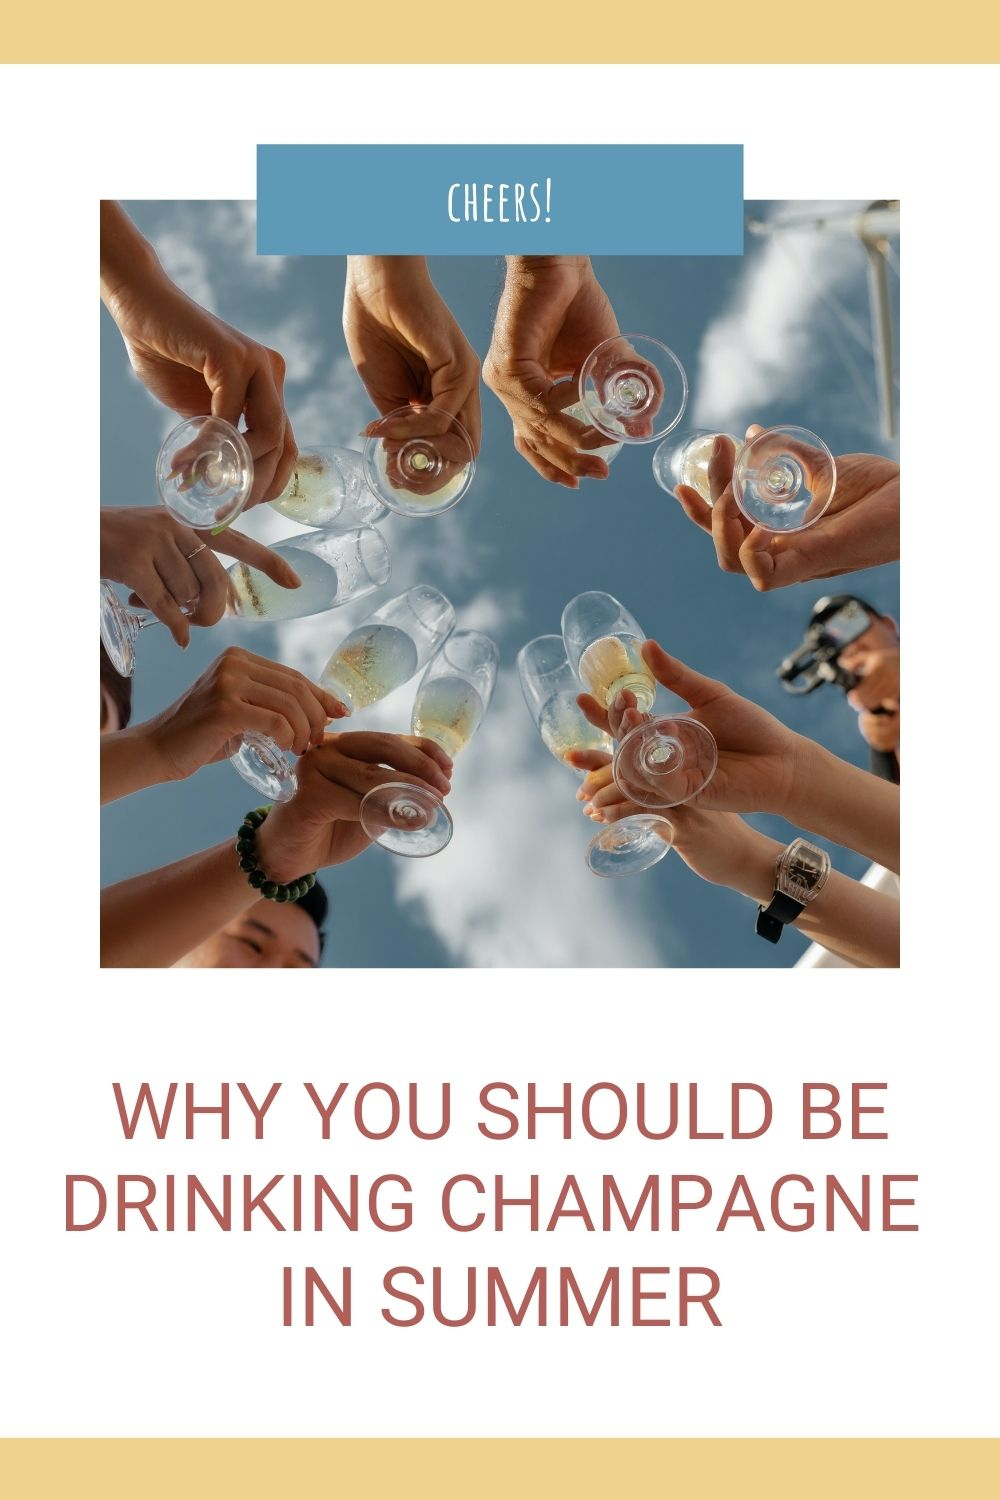 Why you should be drinking champagne in summer graphic